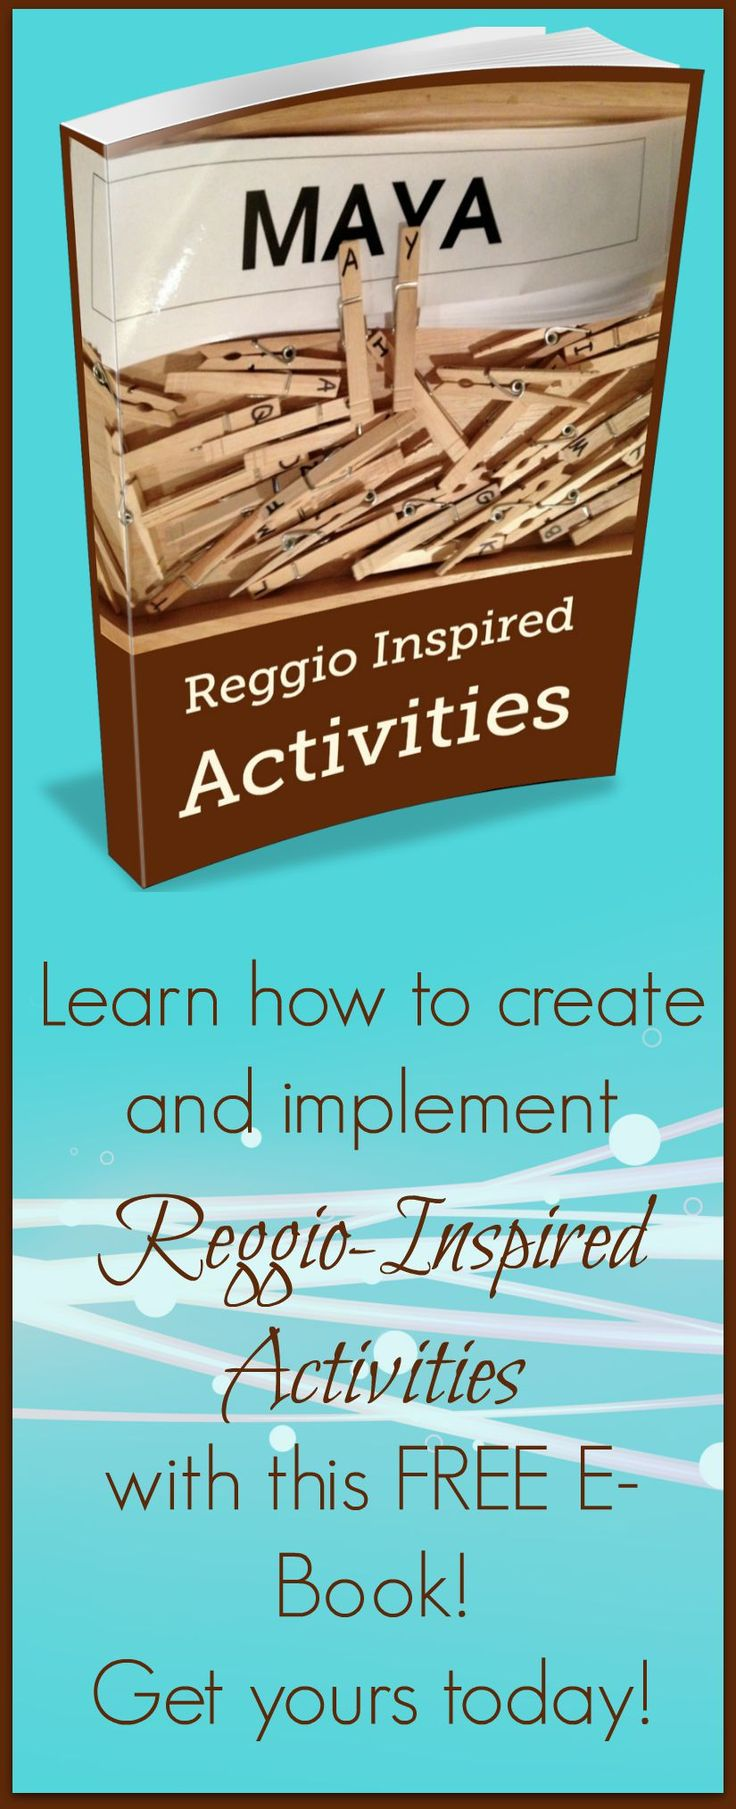 FREE E-Book full of Reggio-Inspired activities!